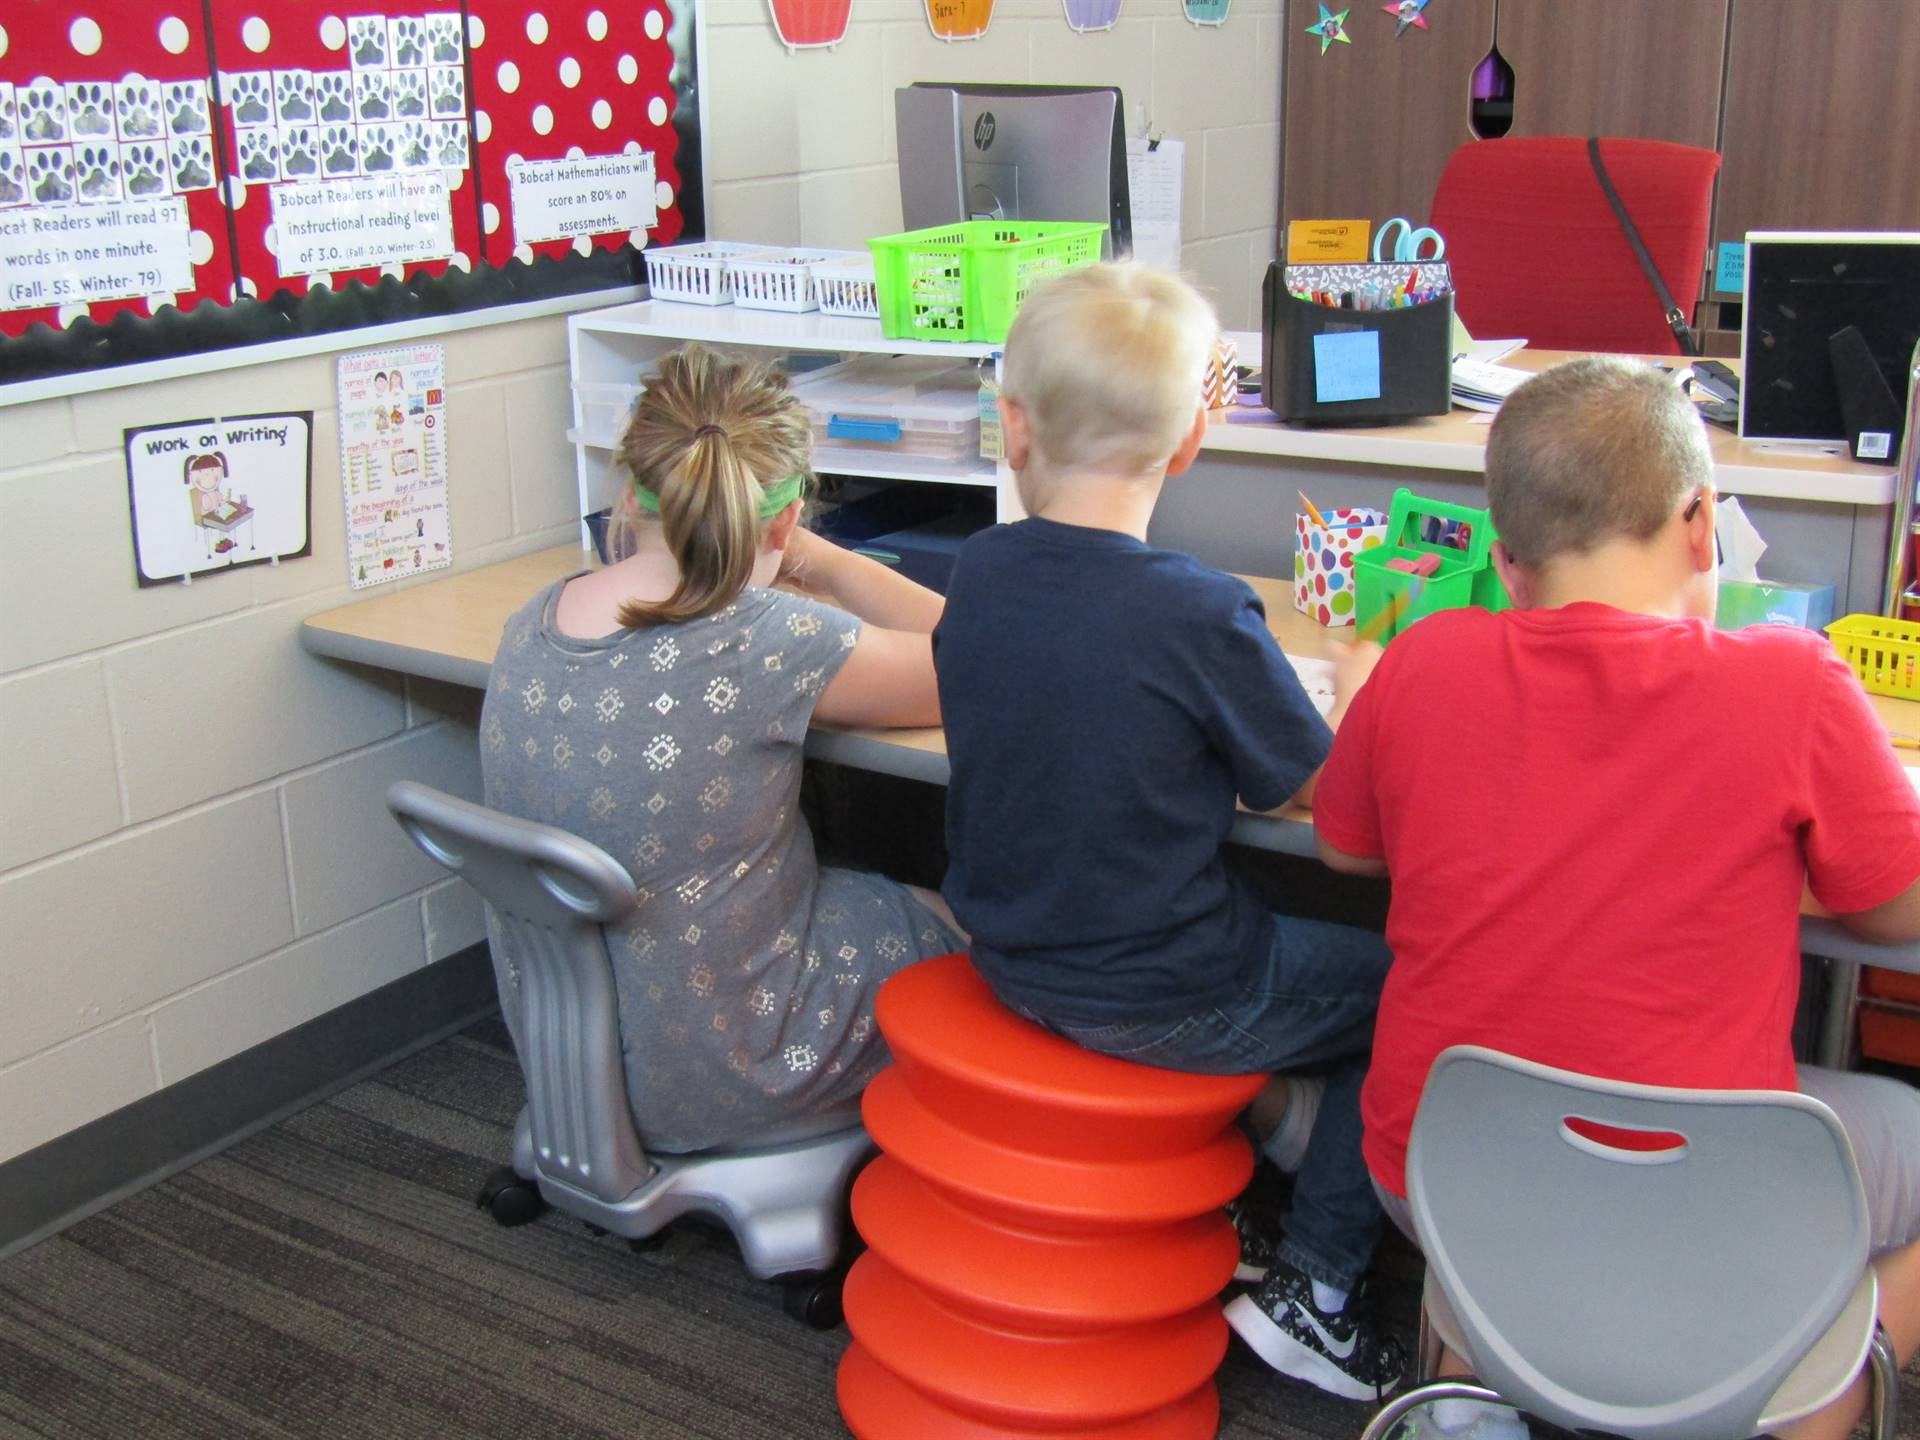 The students love the flexible seating options